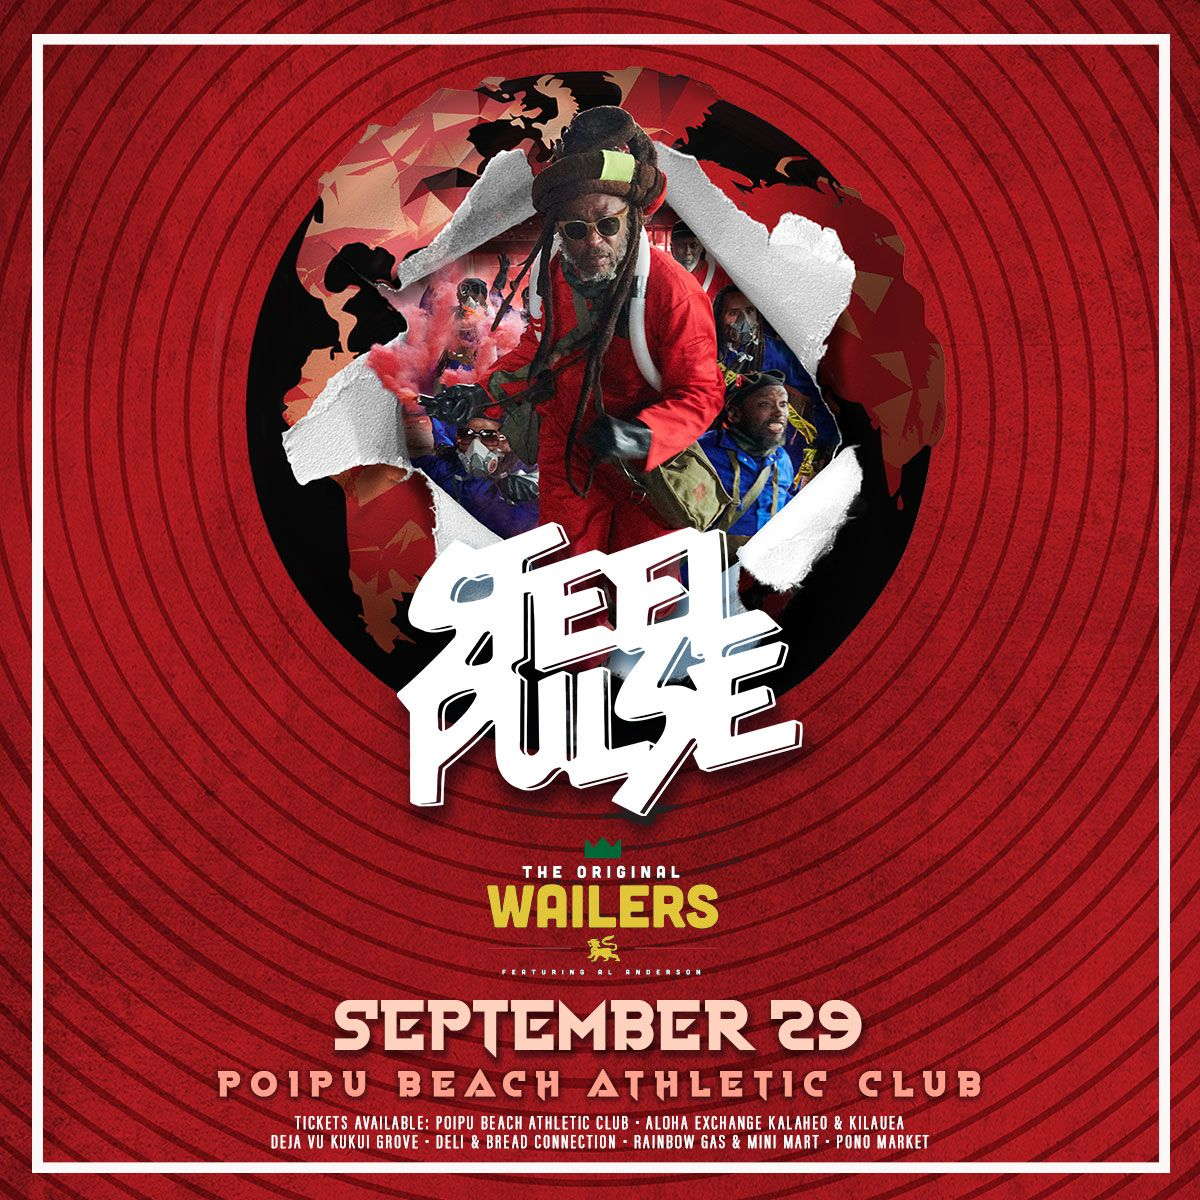 SteelPulse_OriginalWailers_KAUAI.jpg